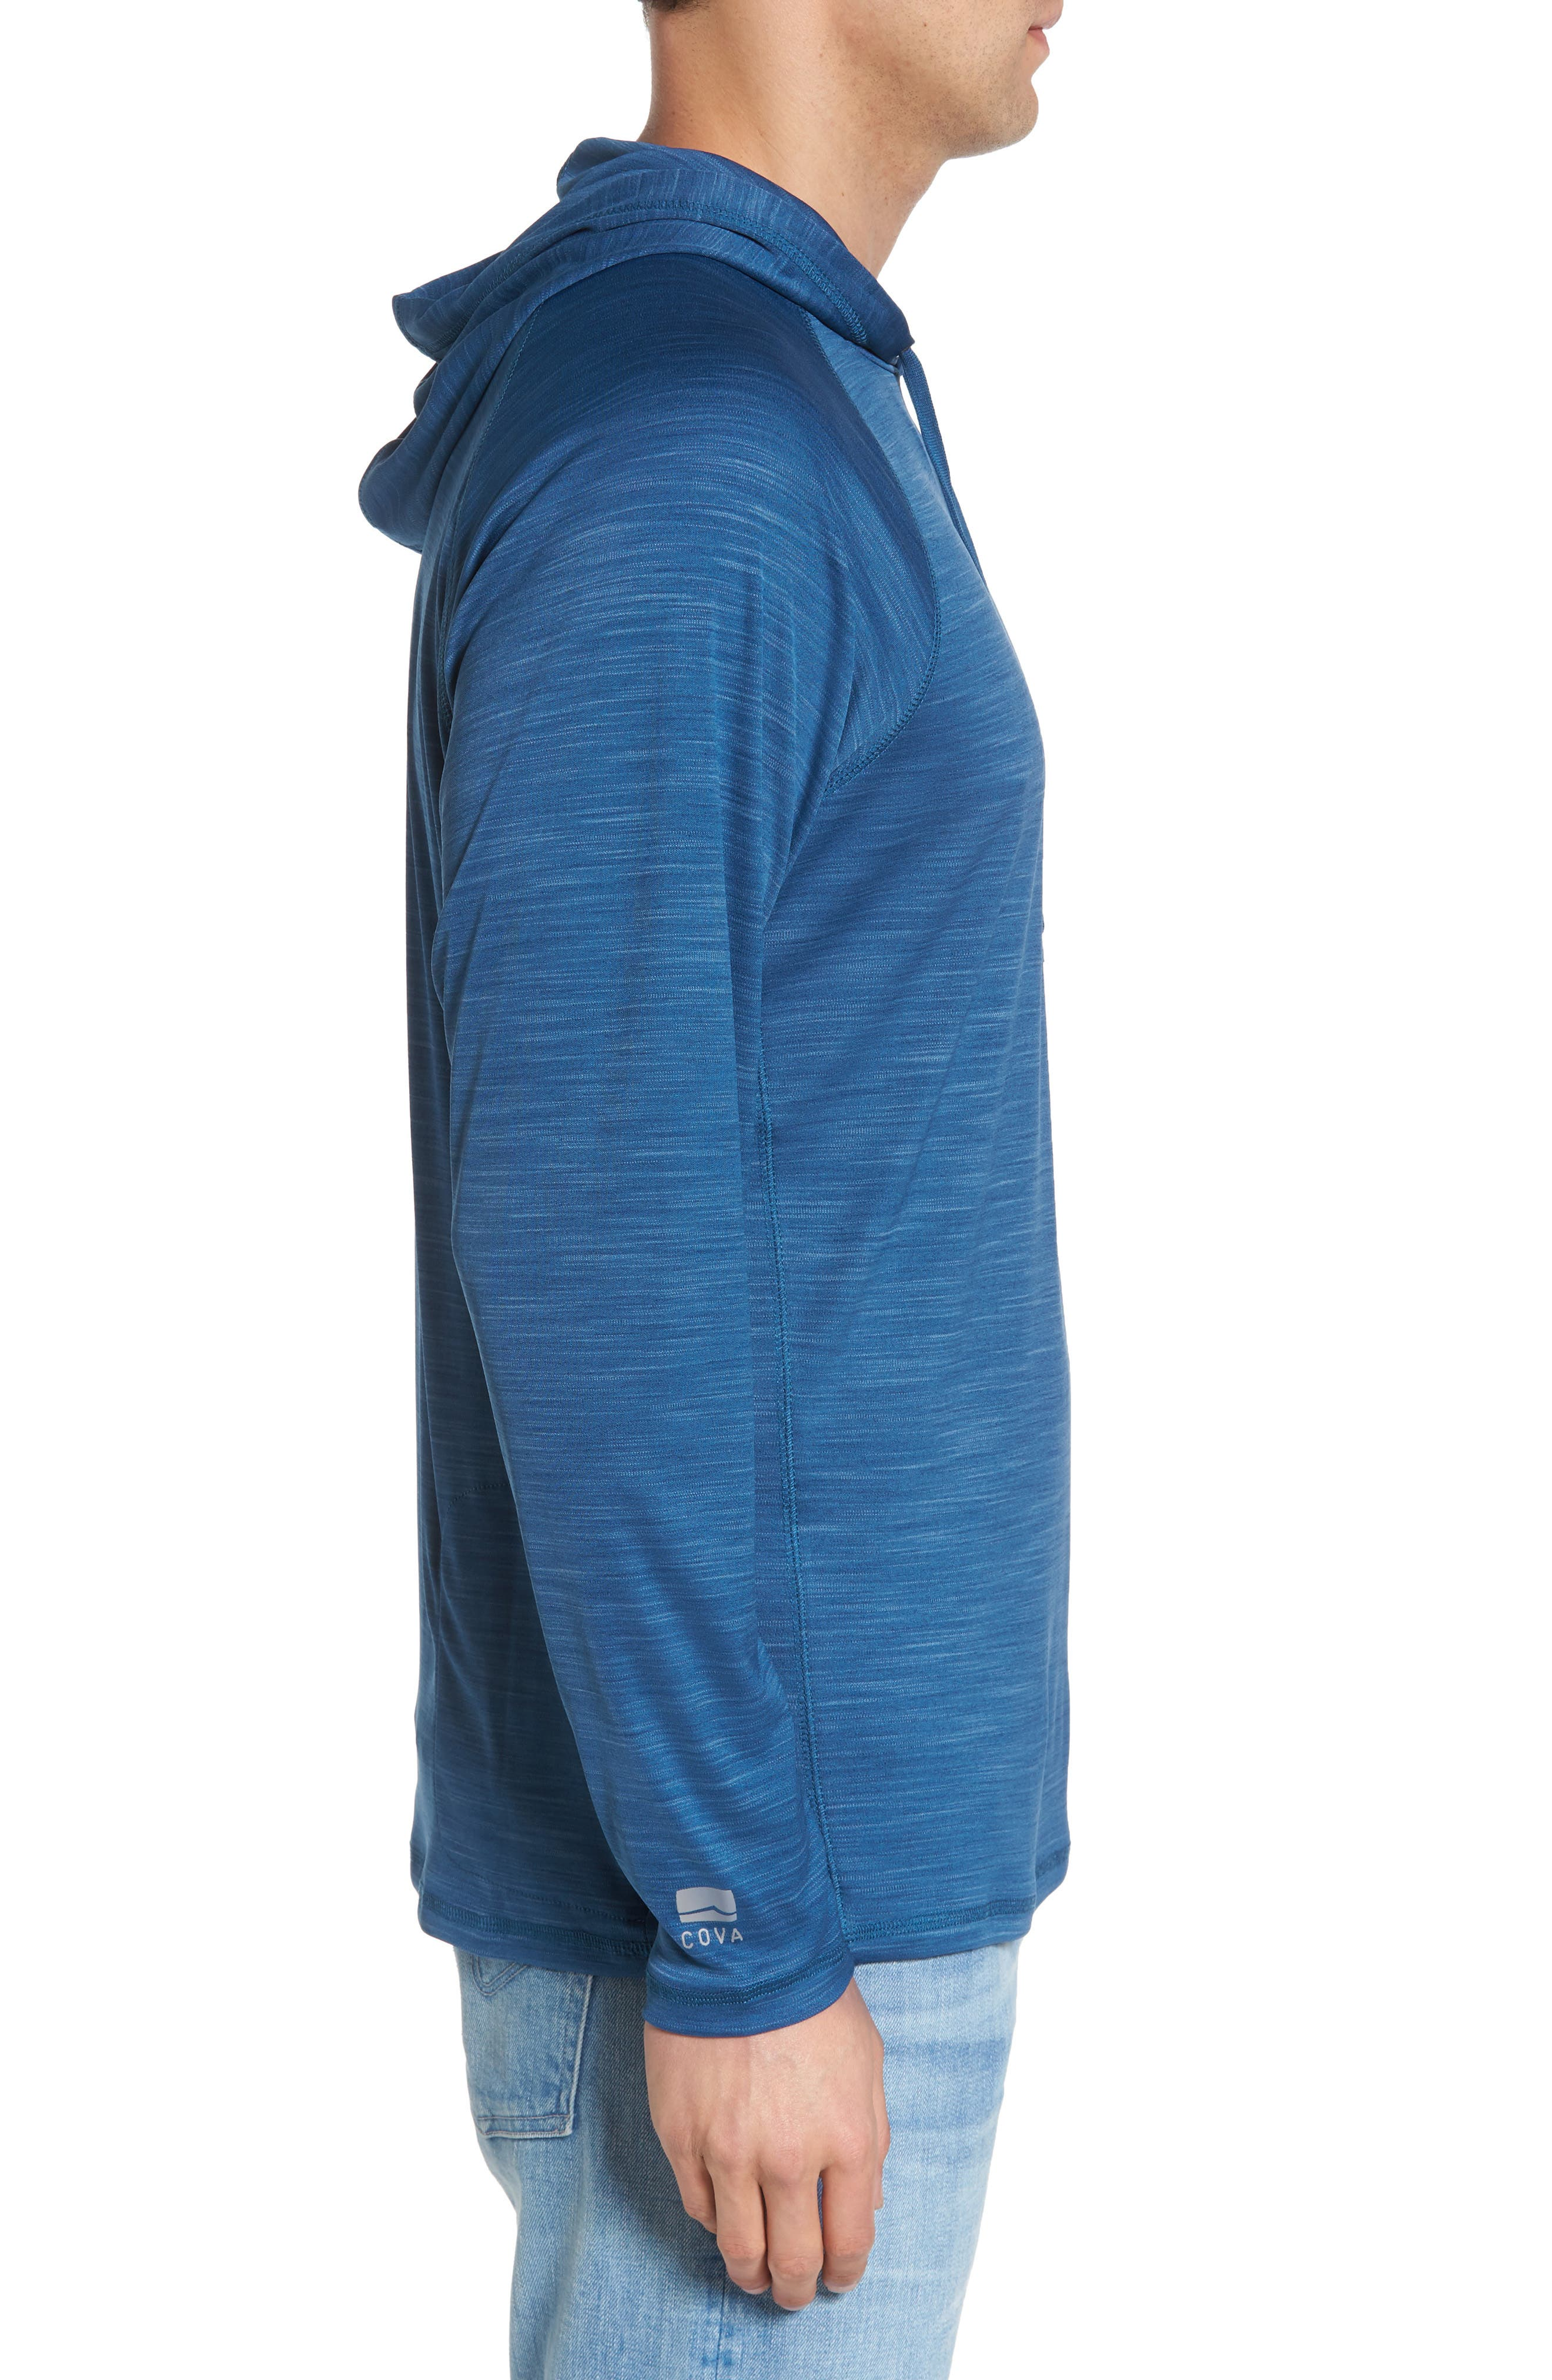 Undercover Hooded Long Sleeve Performance T-Shirt,                             Alternate thumbnail 6, color,